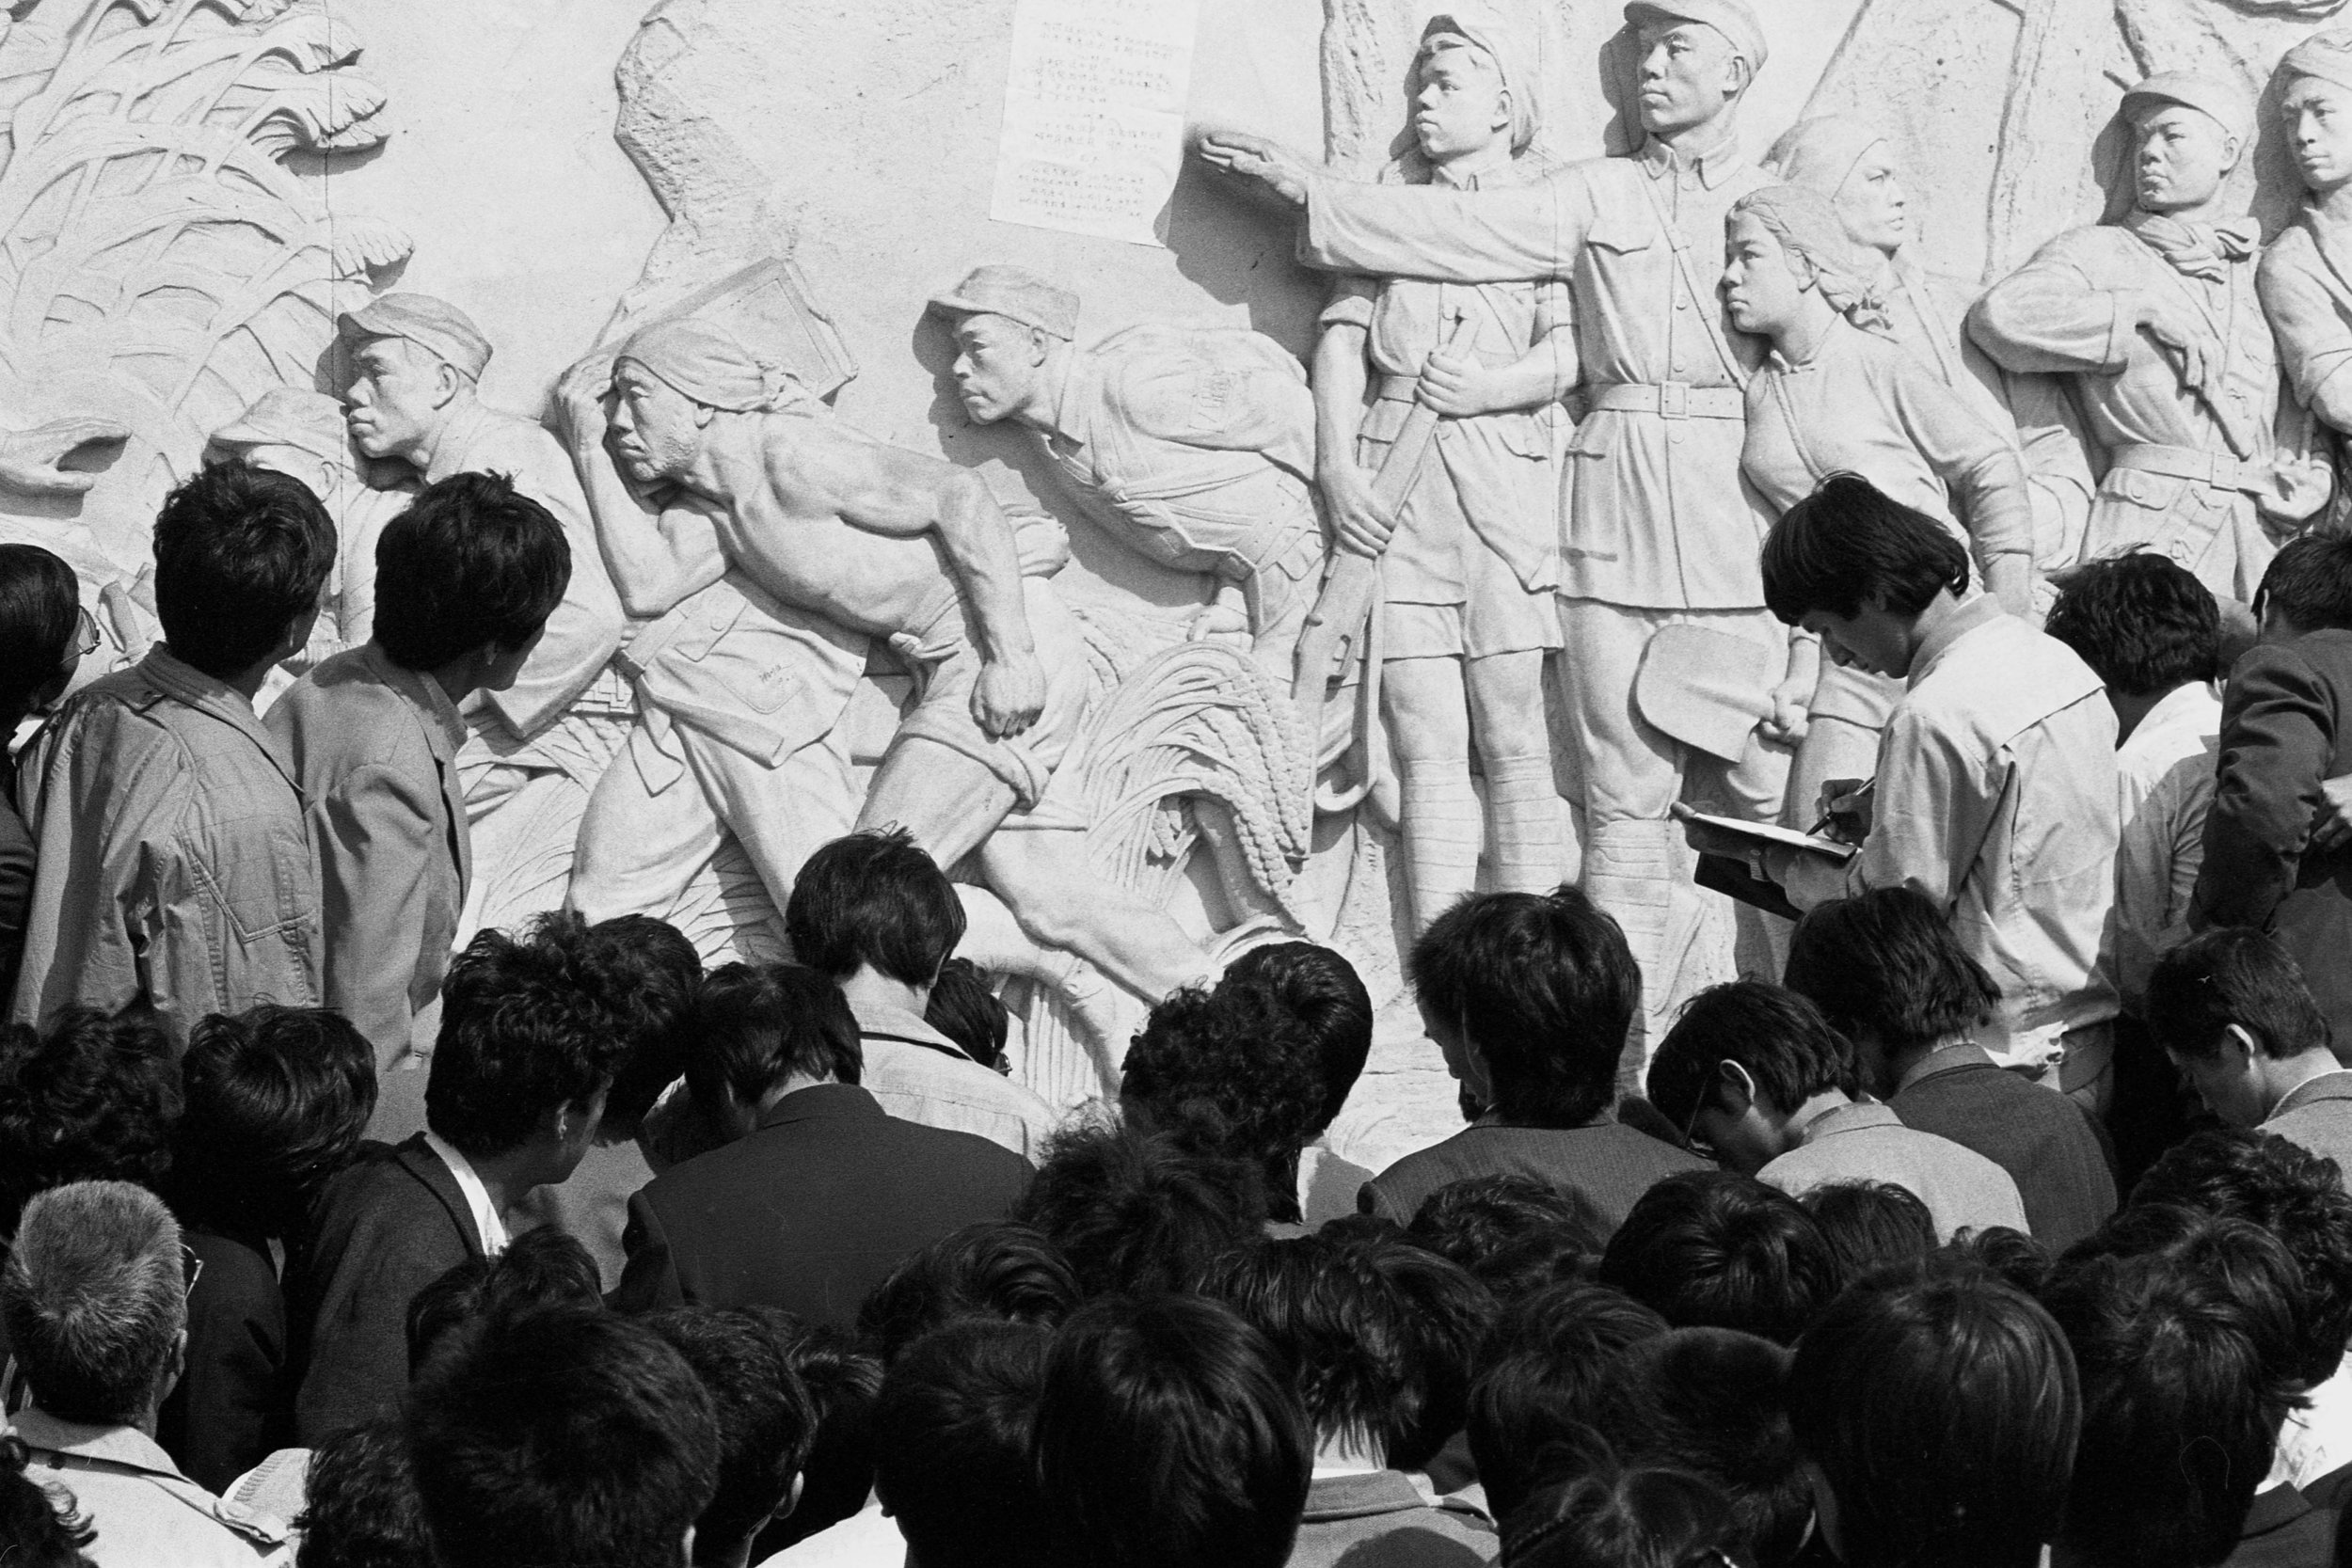 Students gather to look at a document pasted on the Monument to the People's Heroes. Photo taken on April 25, 1989. Photo credit: Hsieh San-tai, Howling 1989.